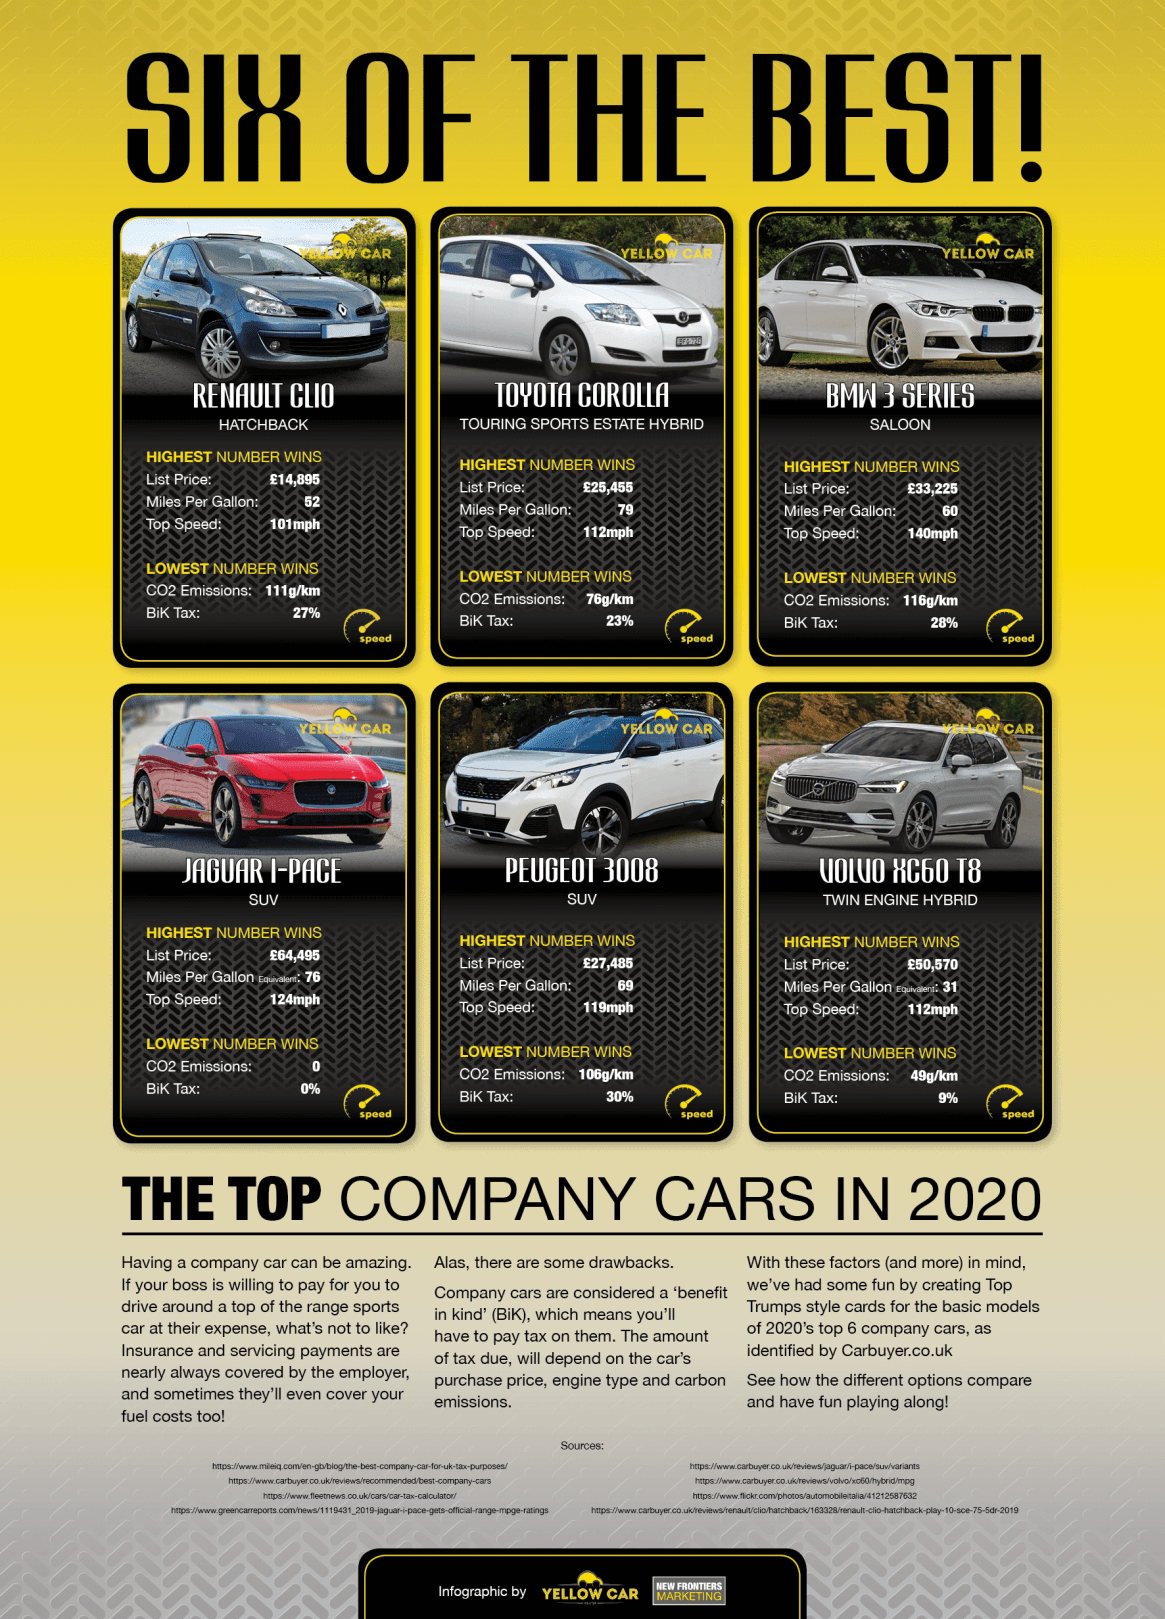 6 Top Company Cars For 2020